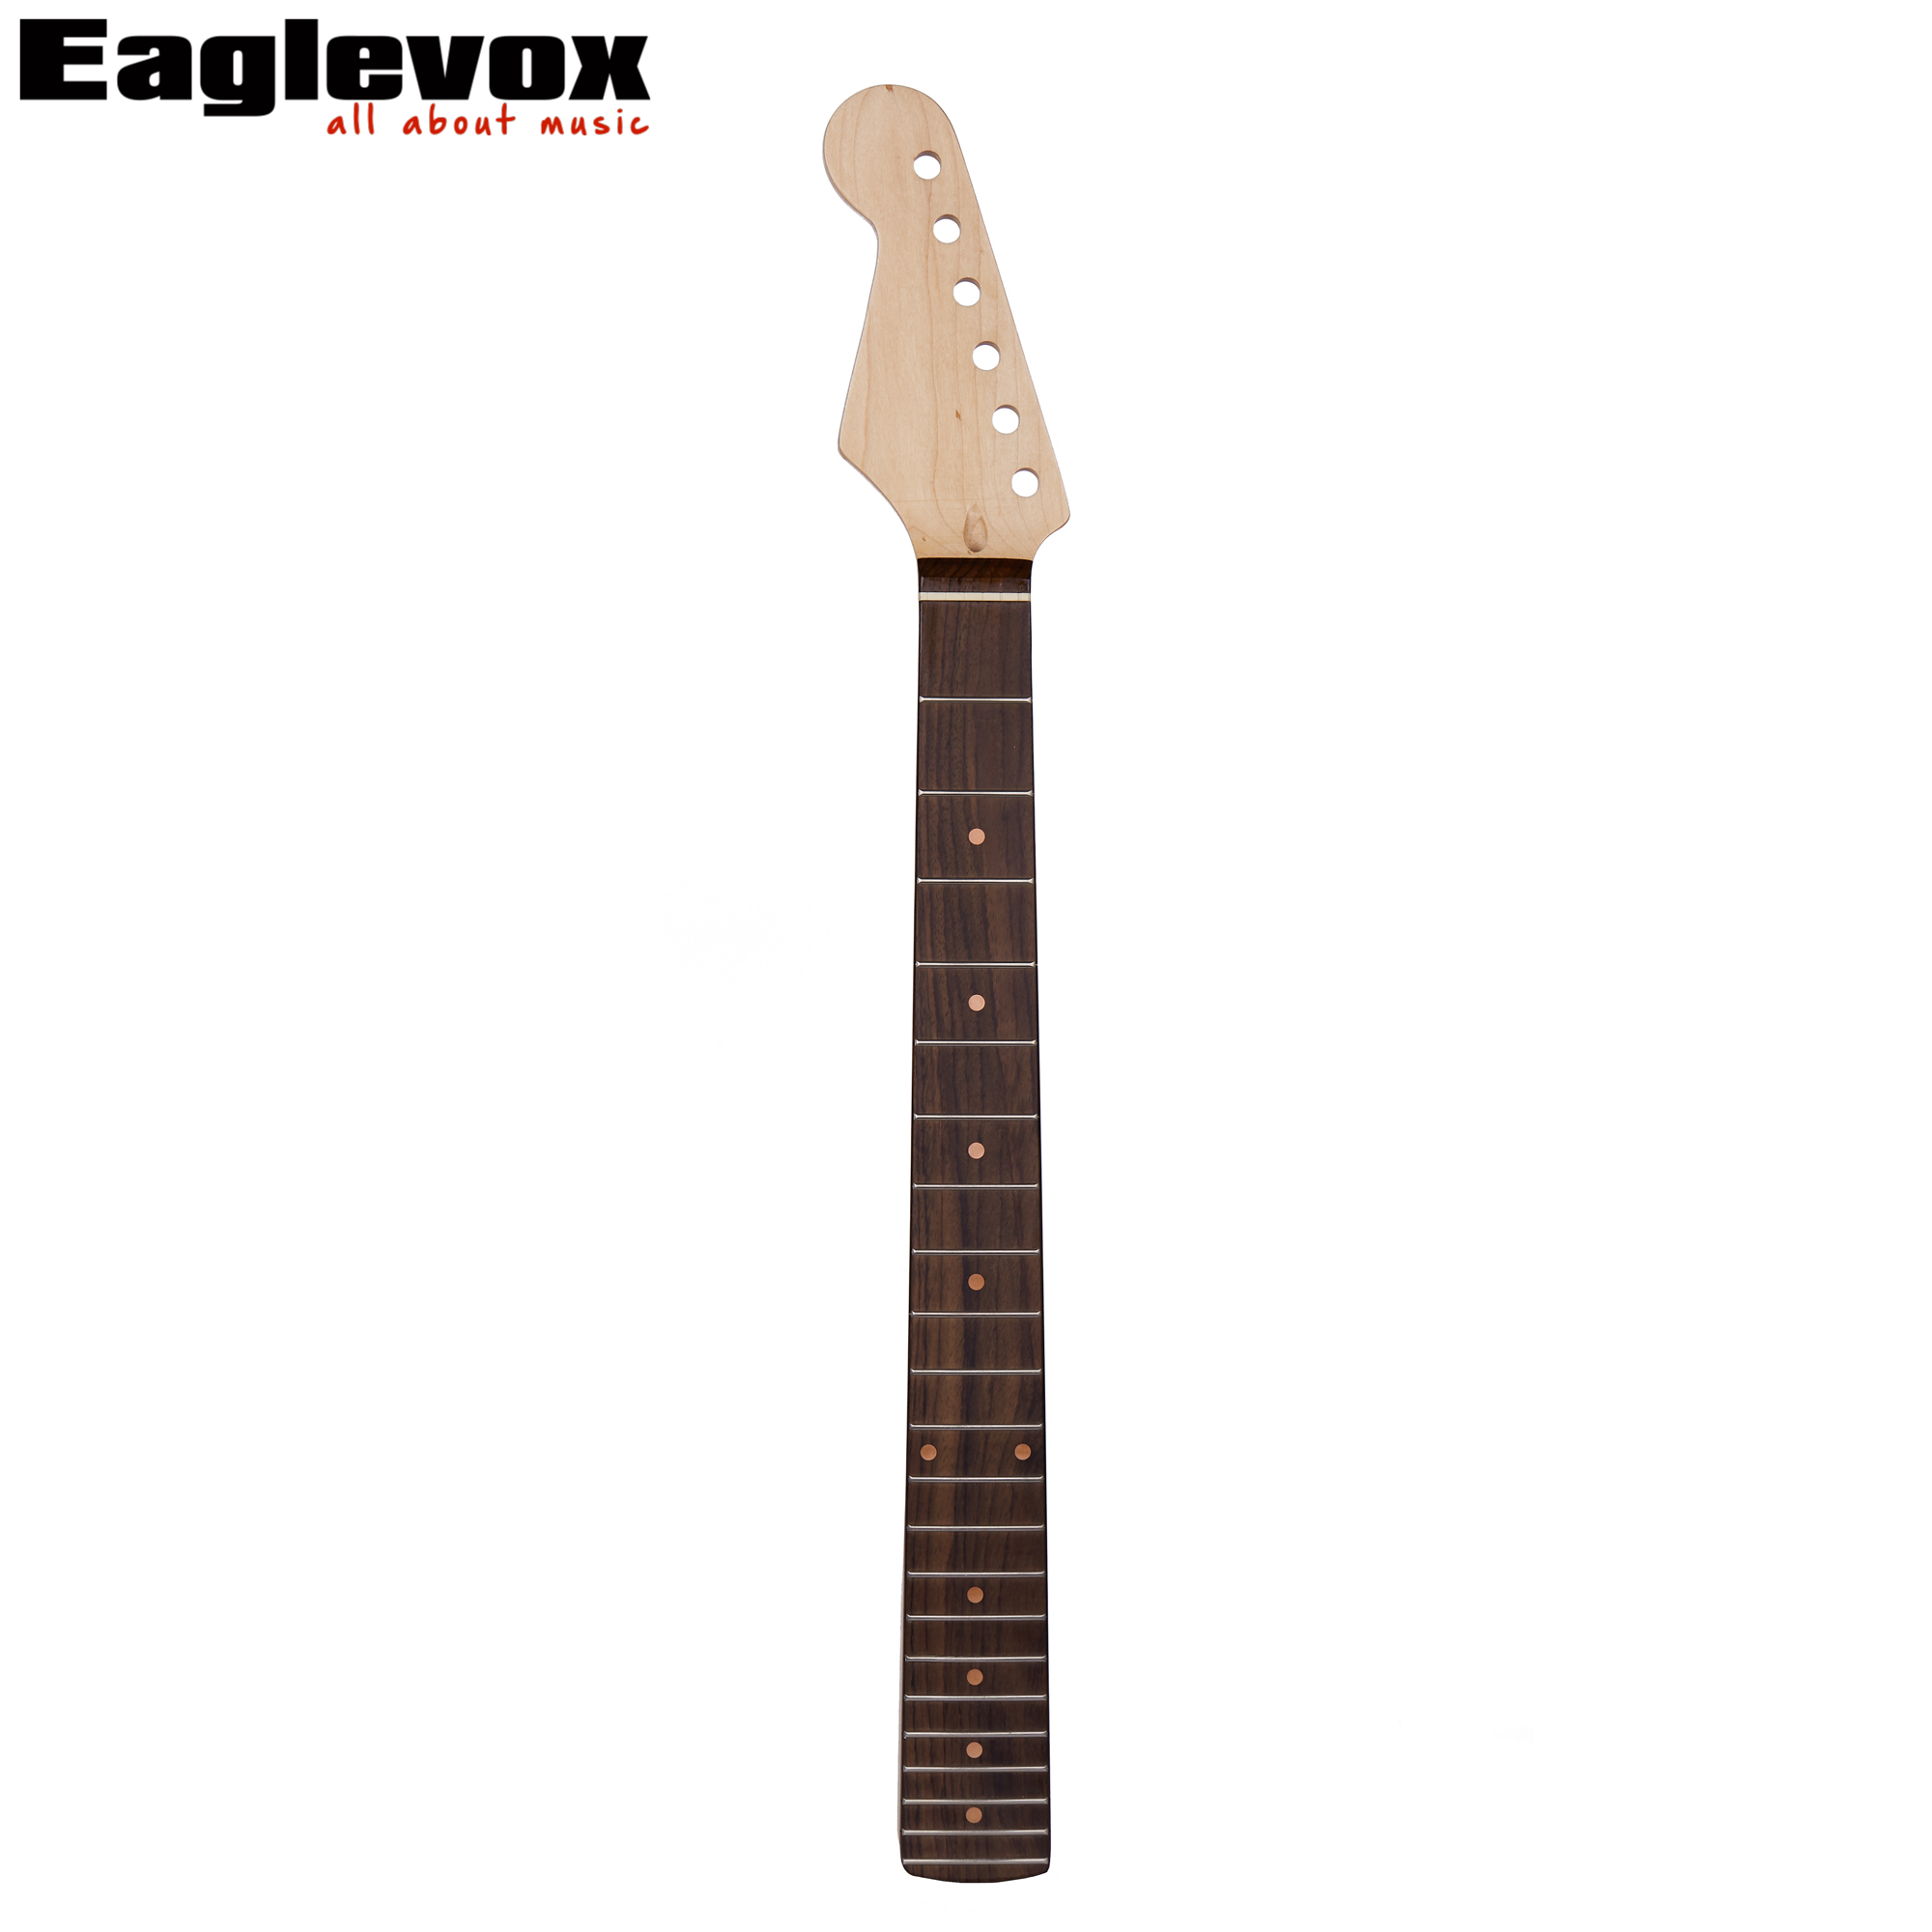 Electric Left Handed Guitar Neck 22 frets Made of Maple 10mm Head Machine Peg Hole Rosewood fingerboard<br>